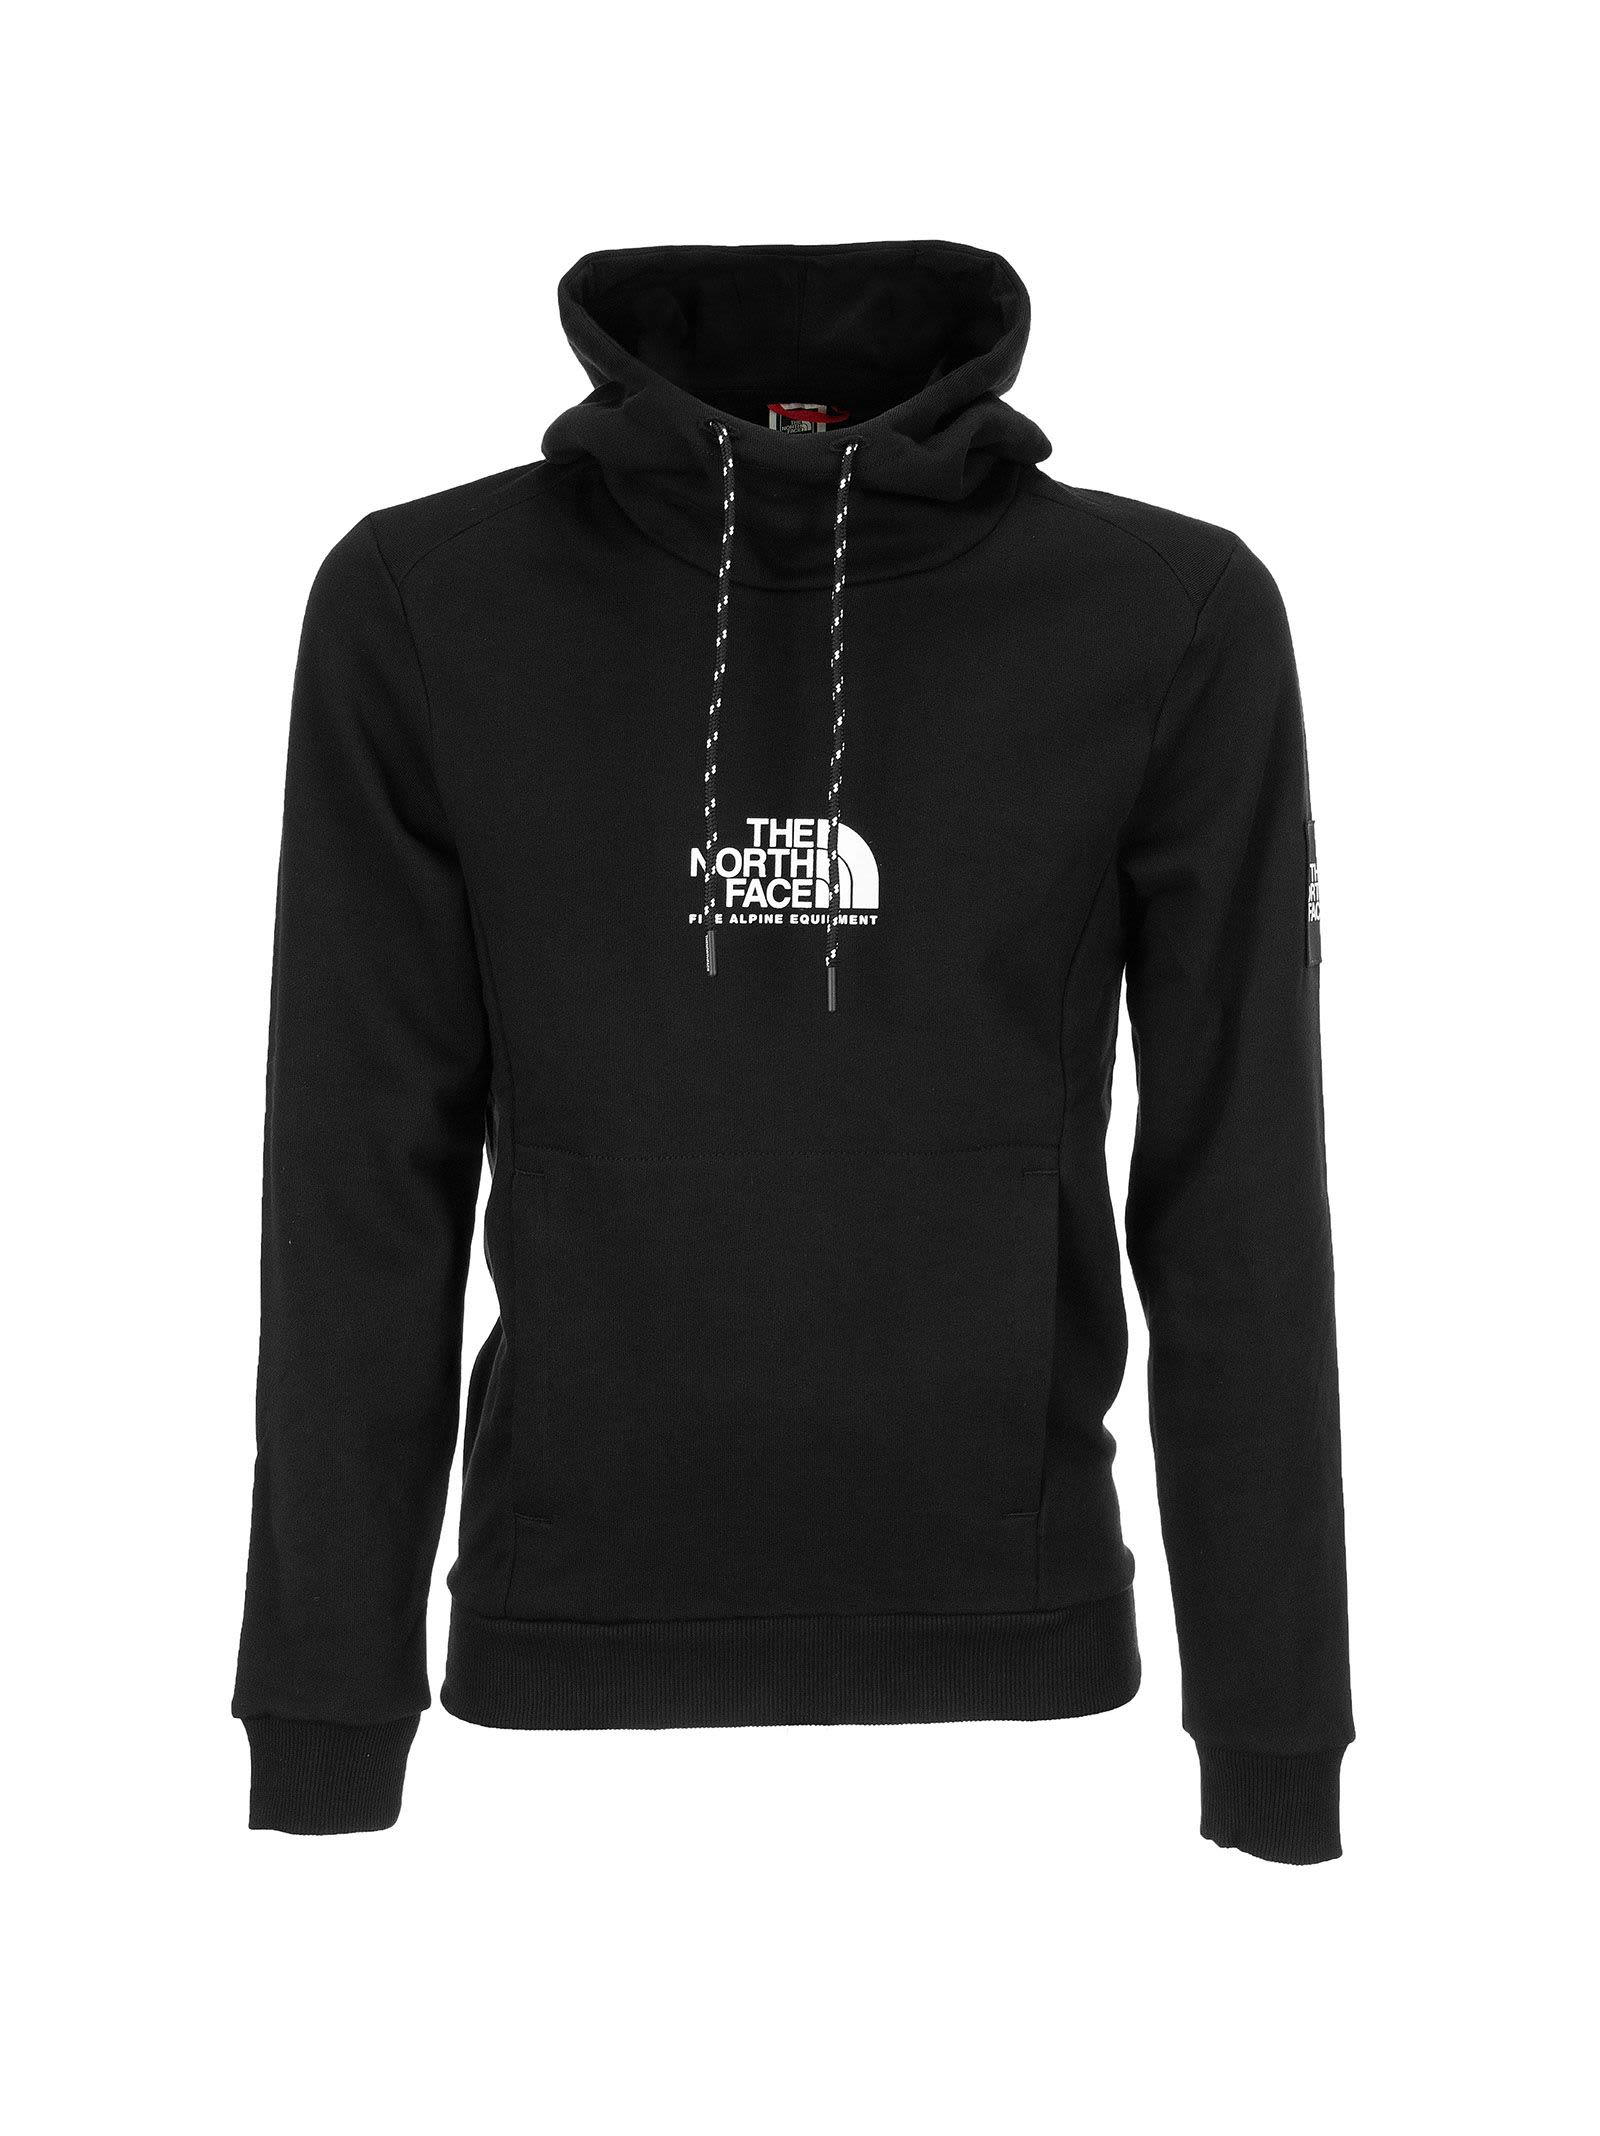 The North Face FINE ALPINE COTTON SWEATSHIRT WITH HOOD